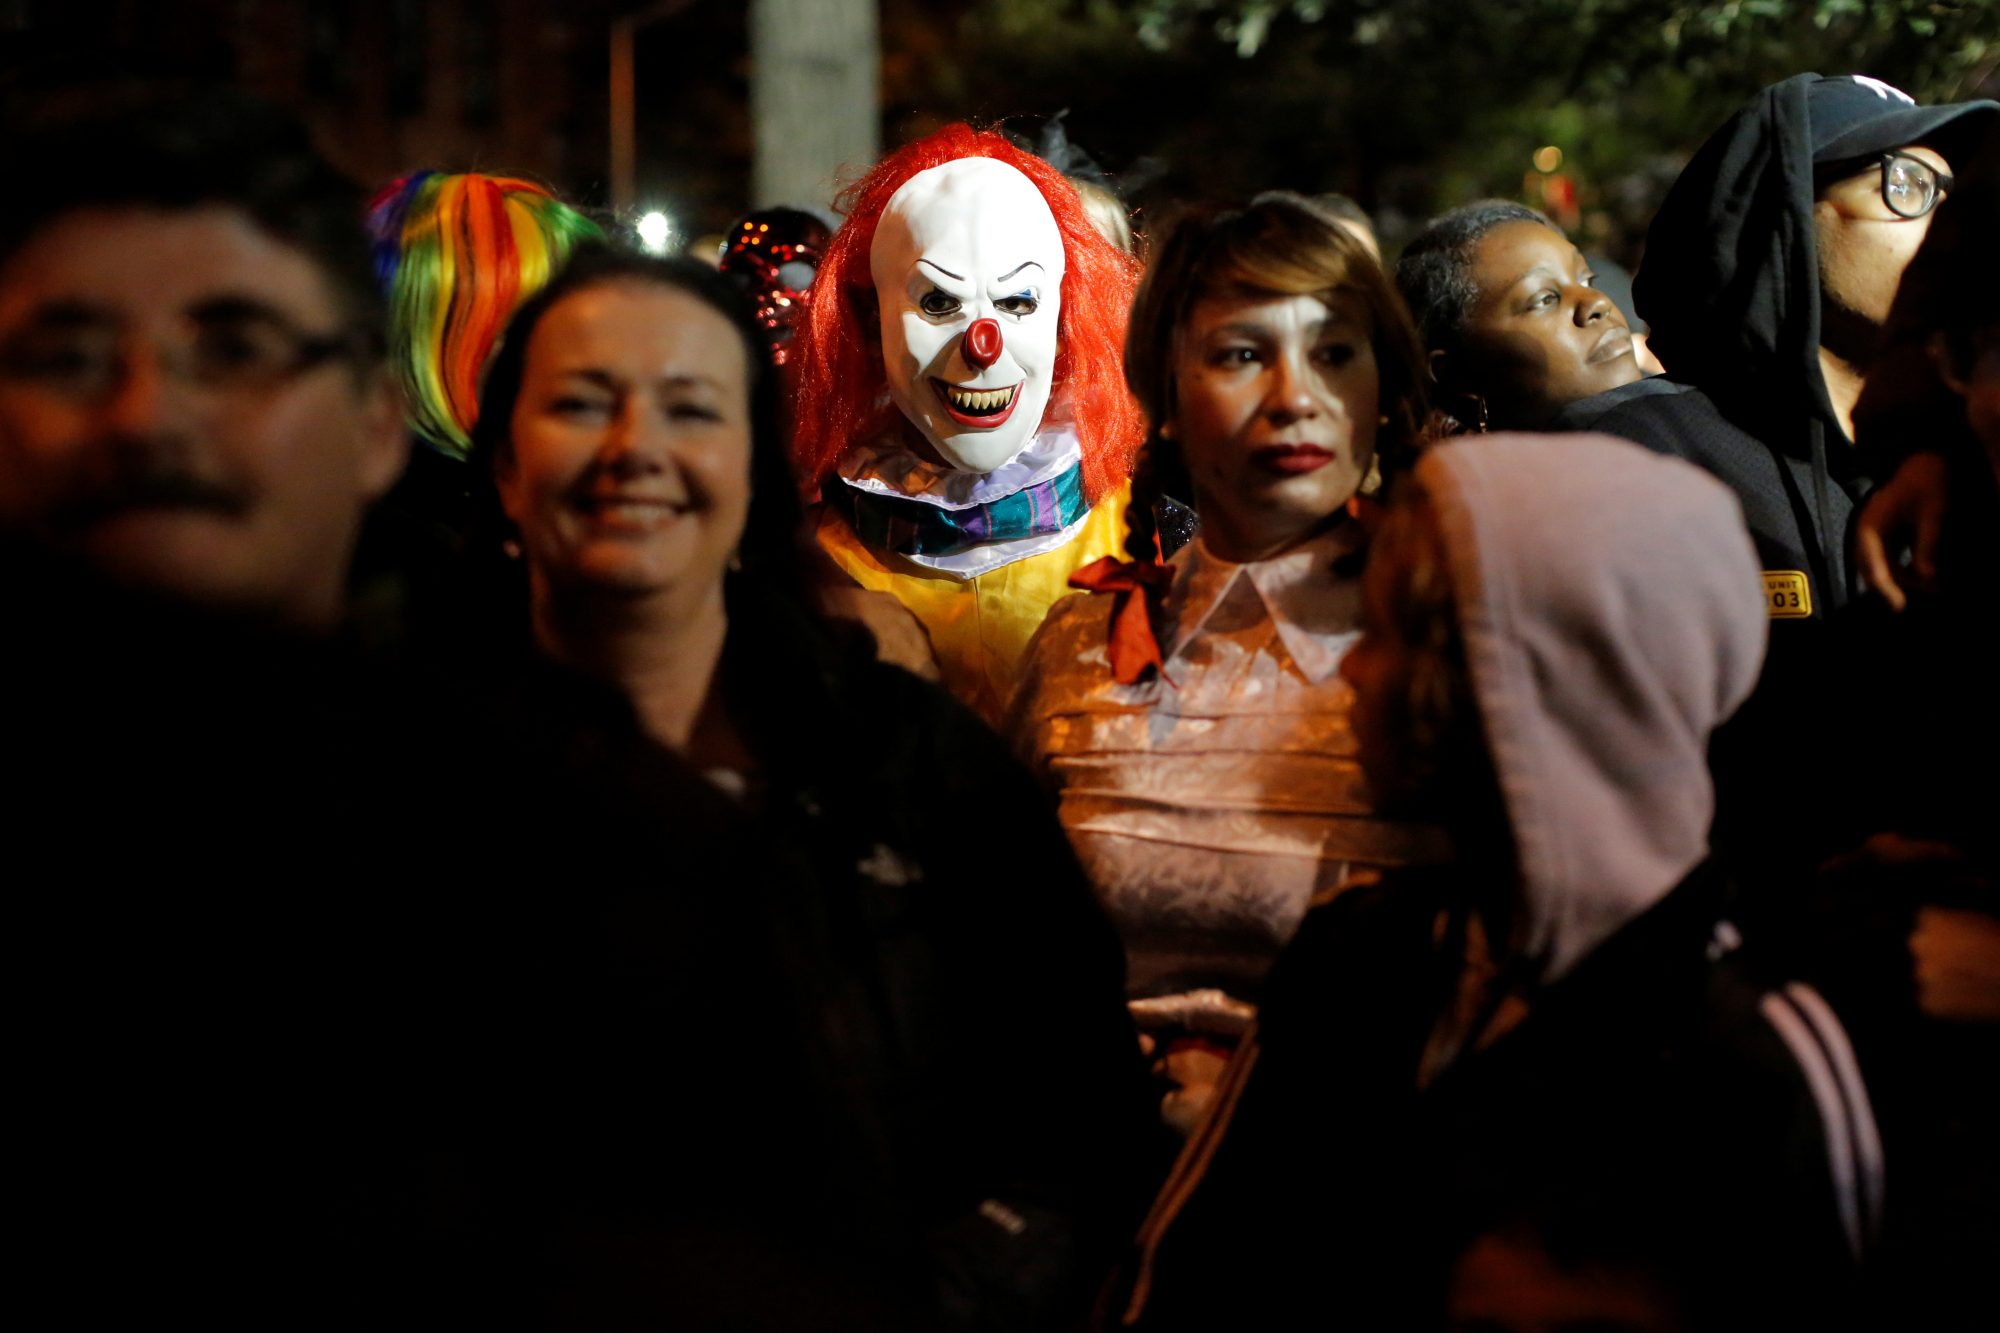 A person dressed in a clown costume stands amongst attendees during the Greenwich Village Halloween Parade in Manhattan, New York, U.S.